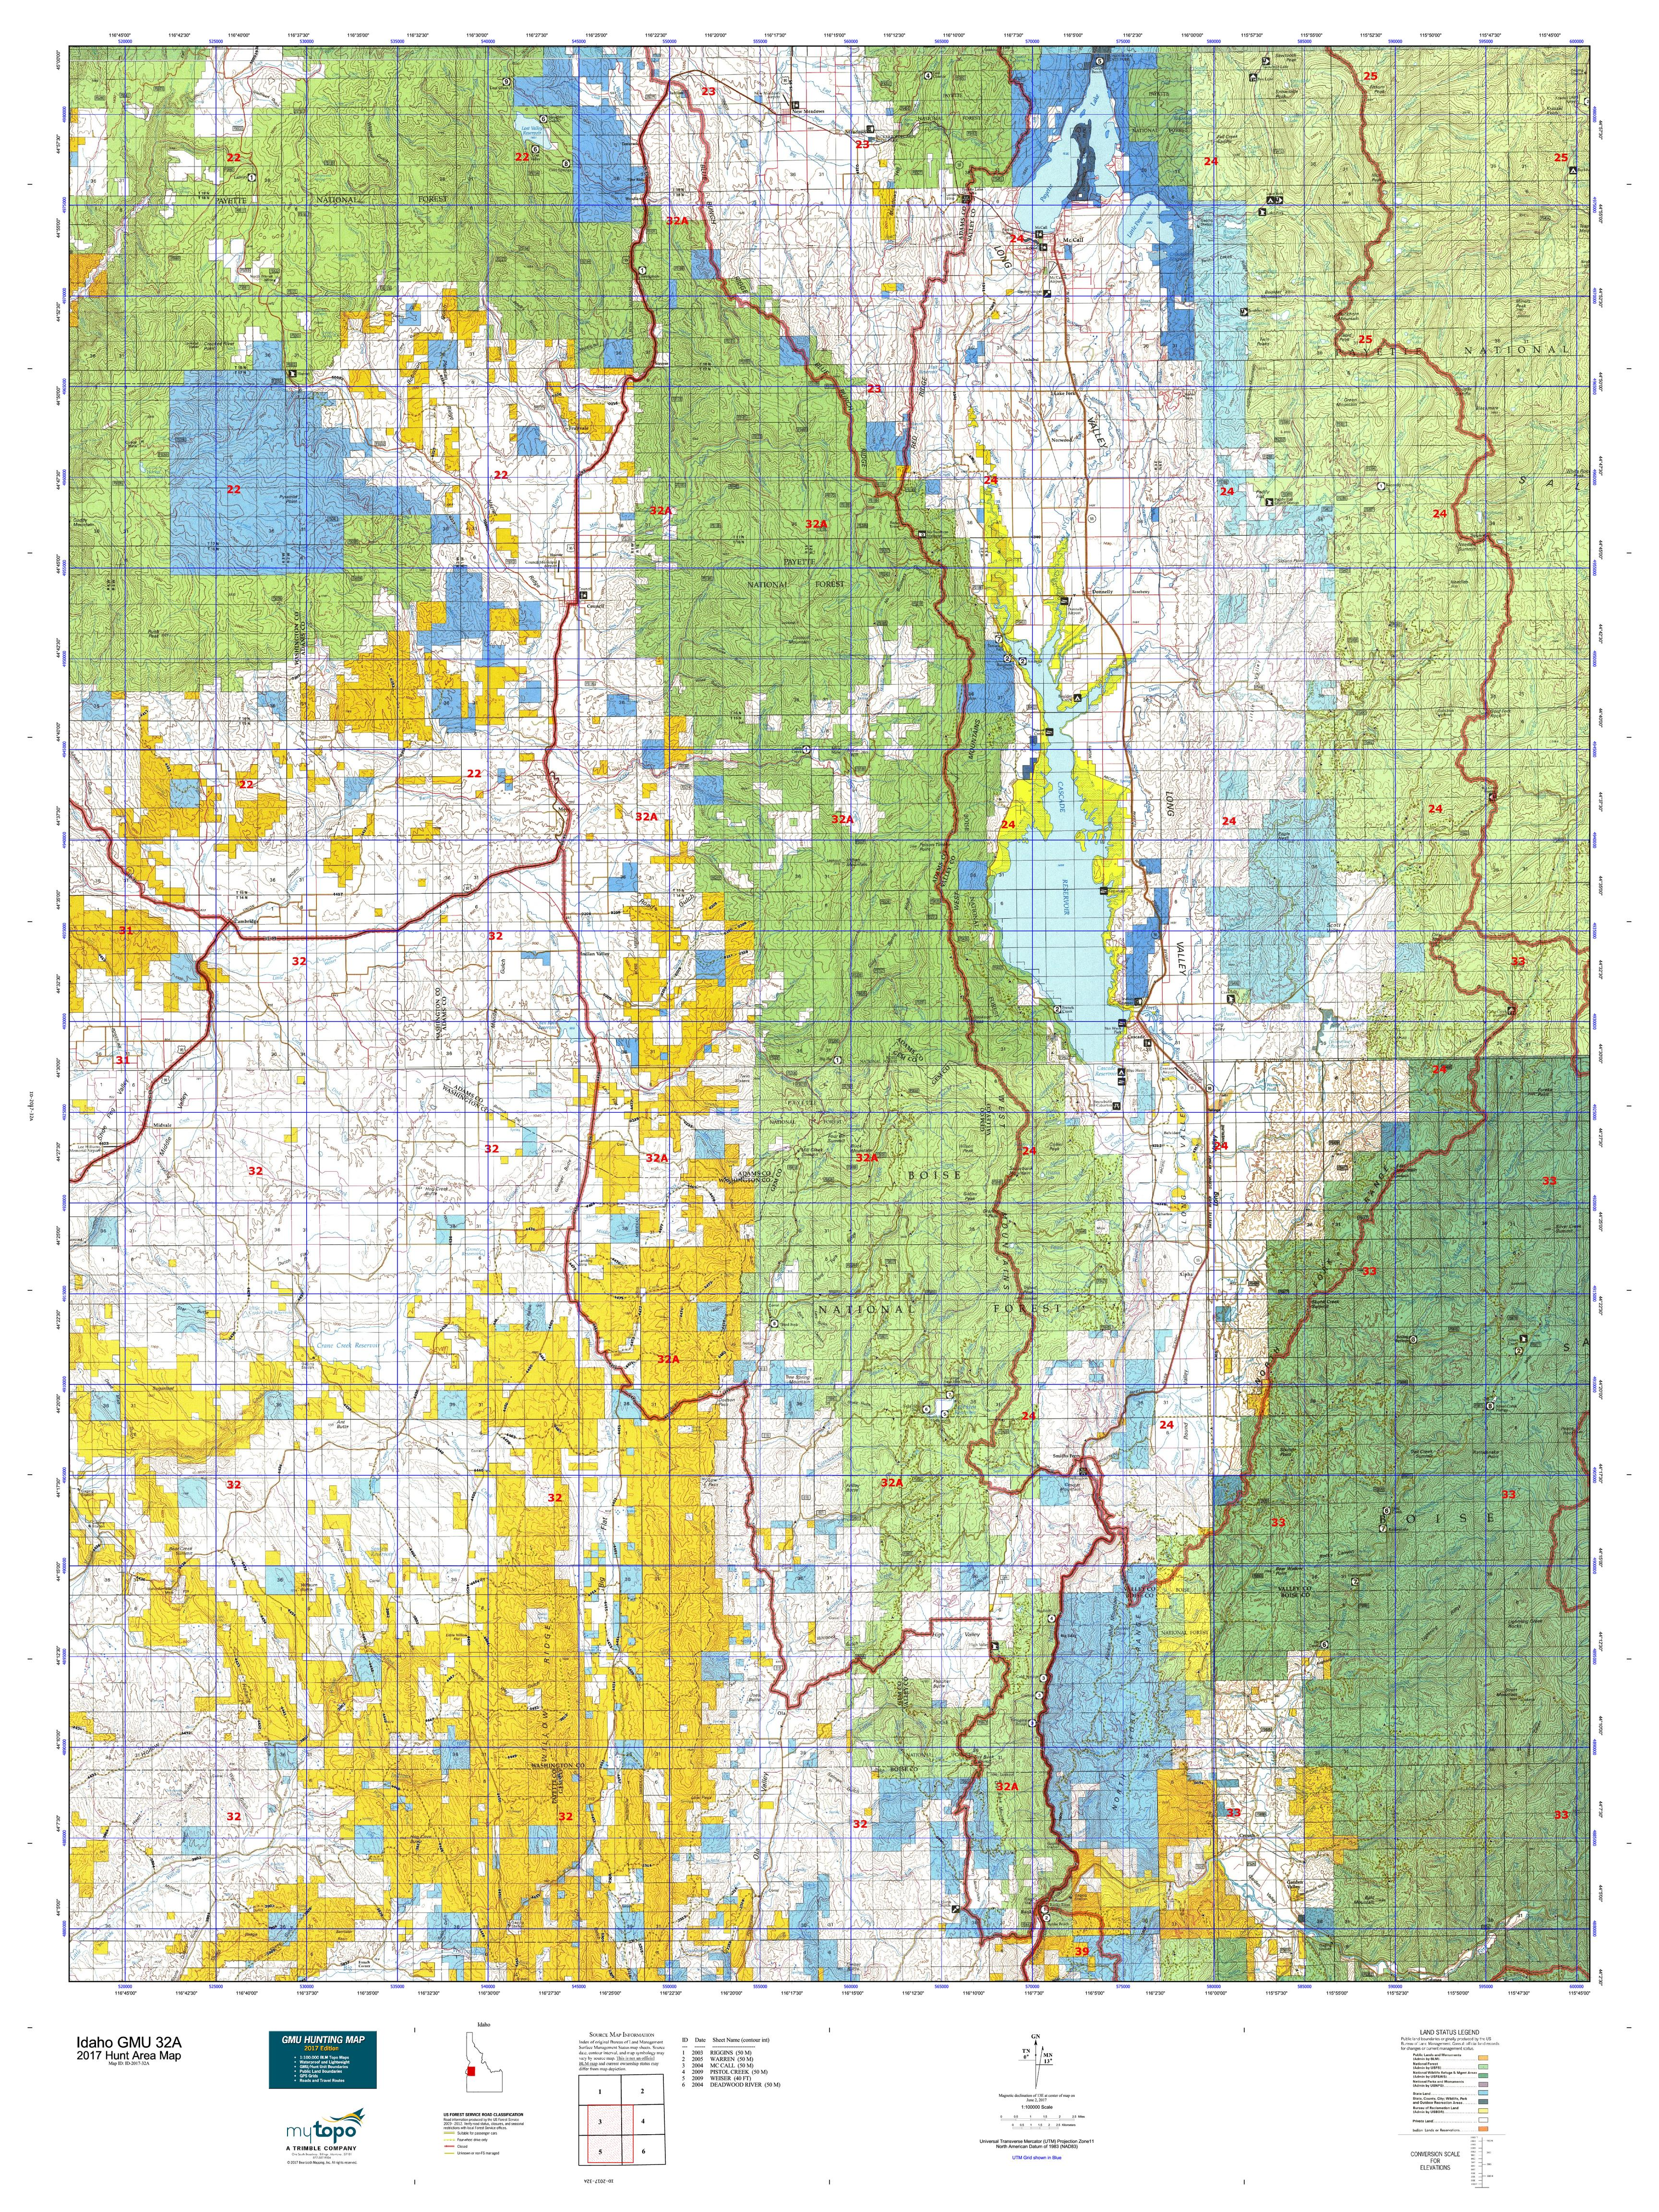 ida preview image (click to view). idaho gmu a map  mytopo